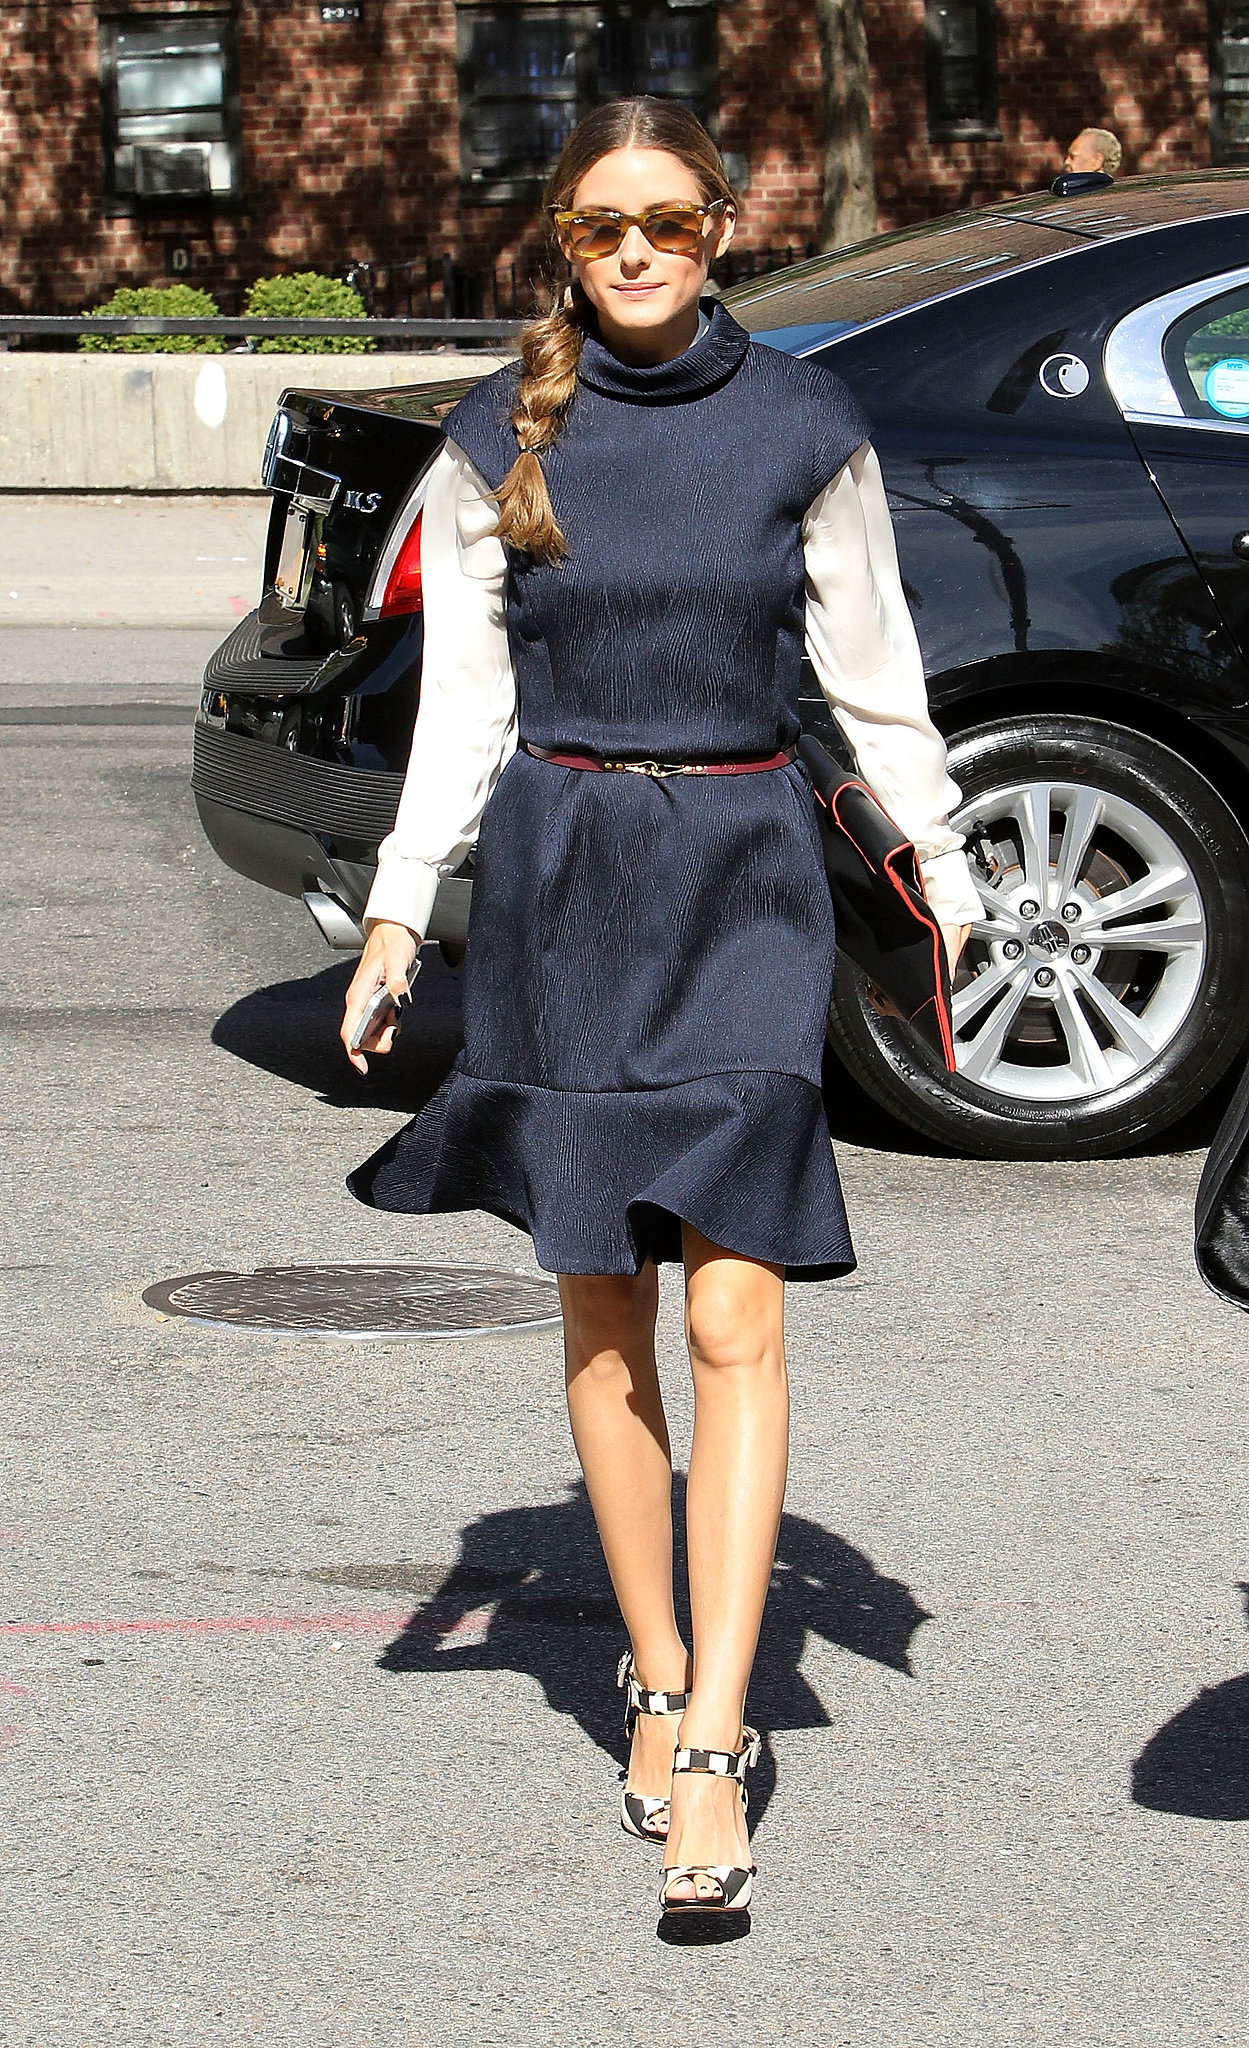 We love the back-to-school vibe to this fit-and-flare dress she layered with a white top.